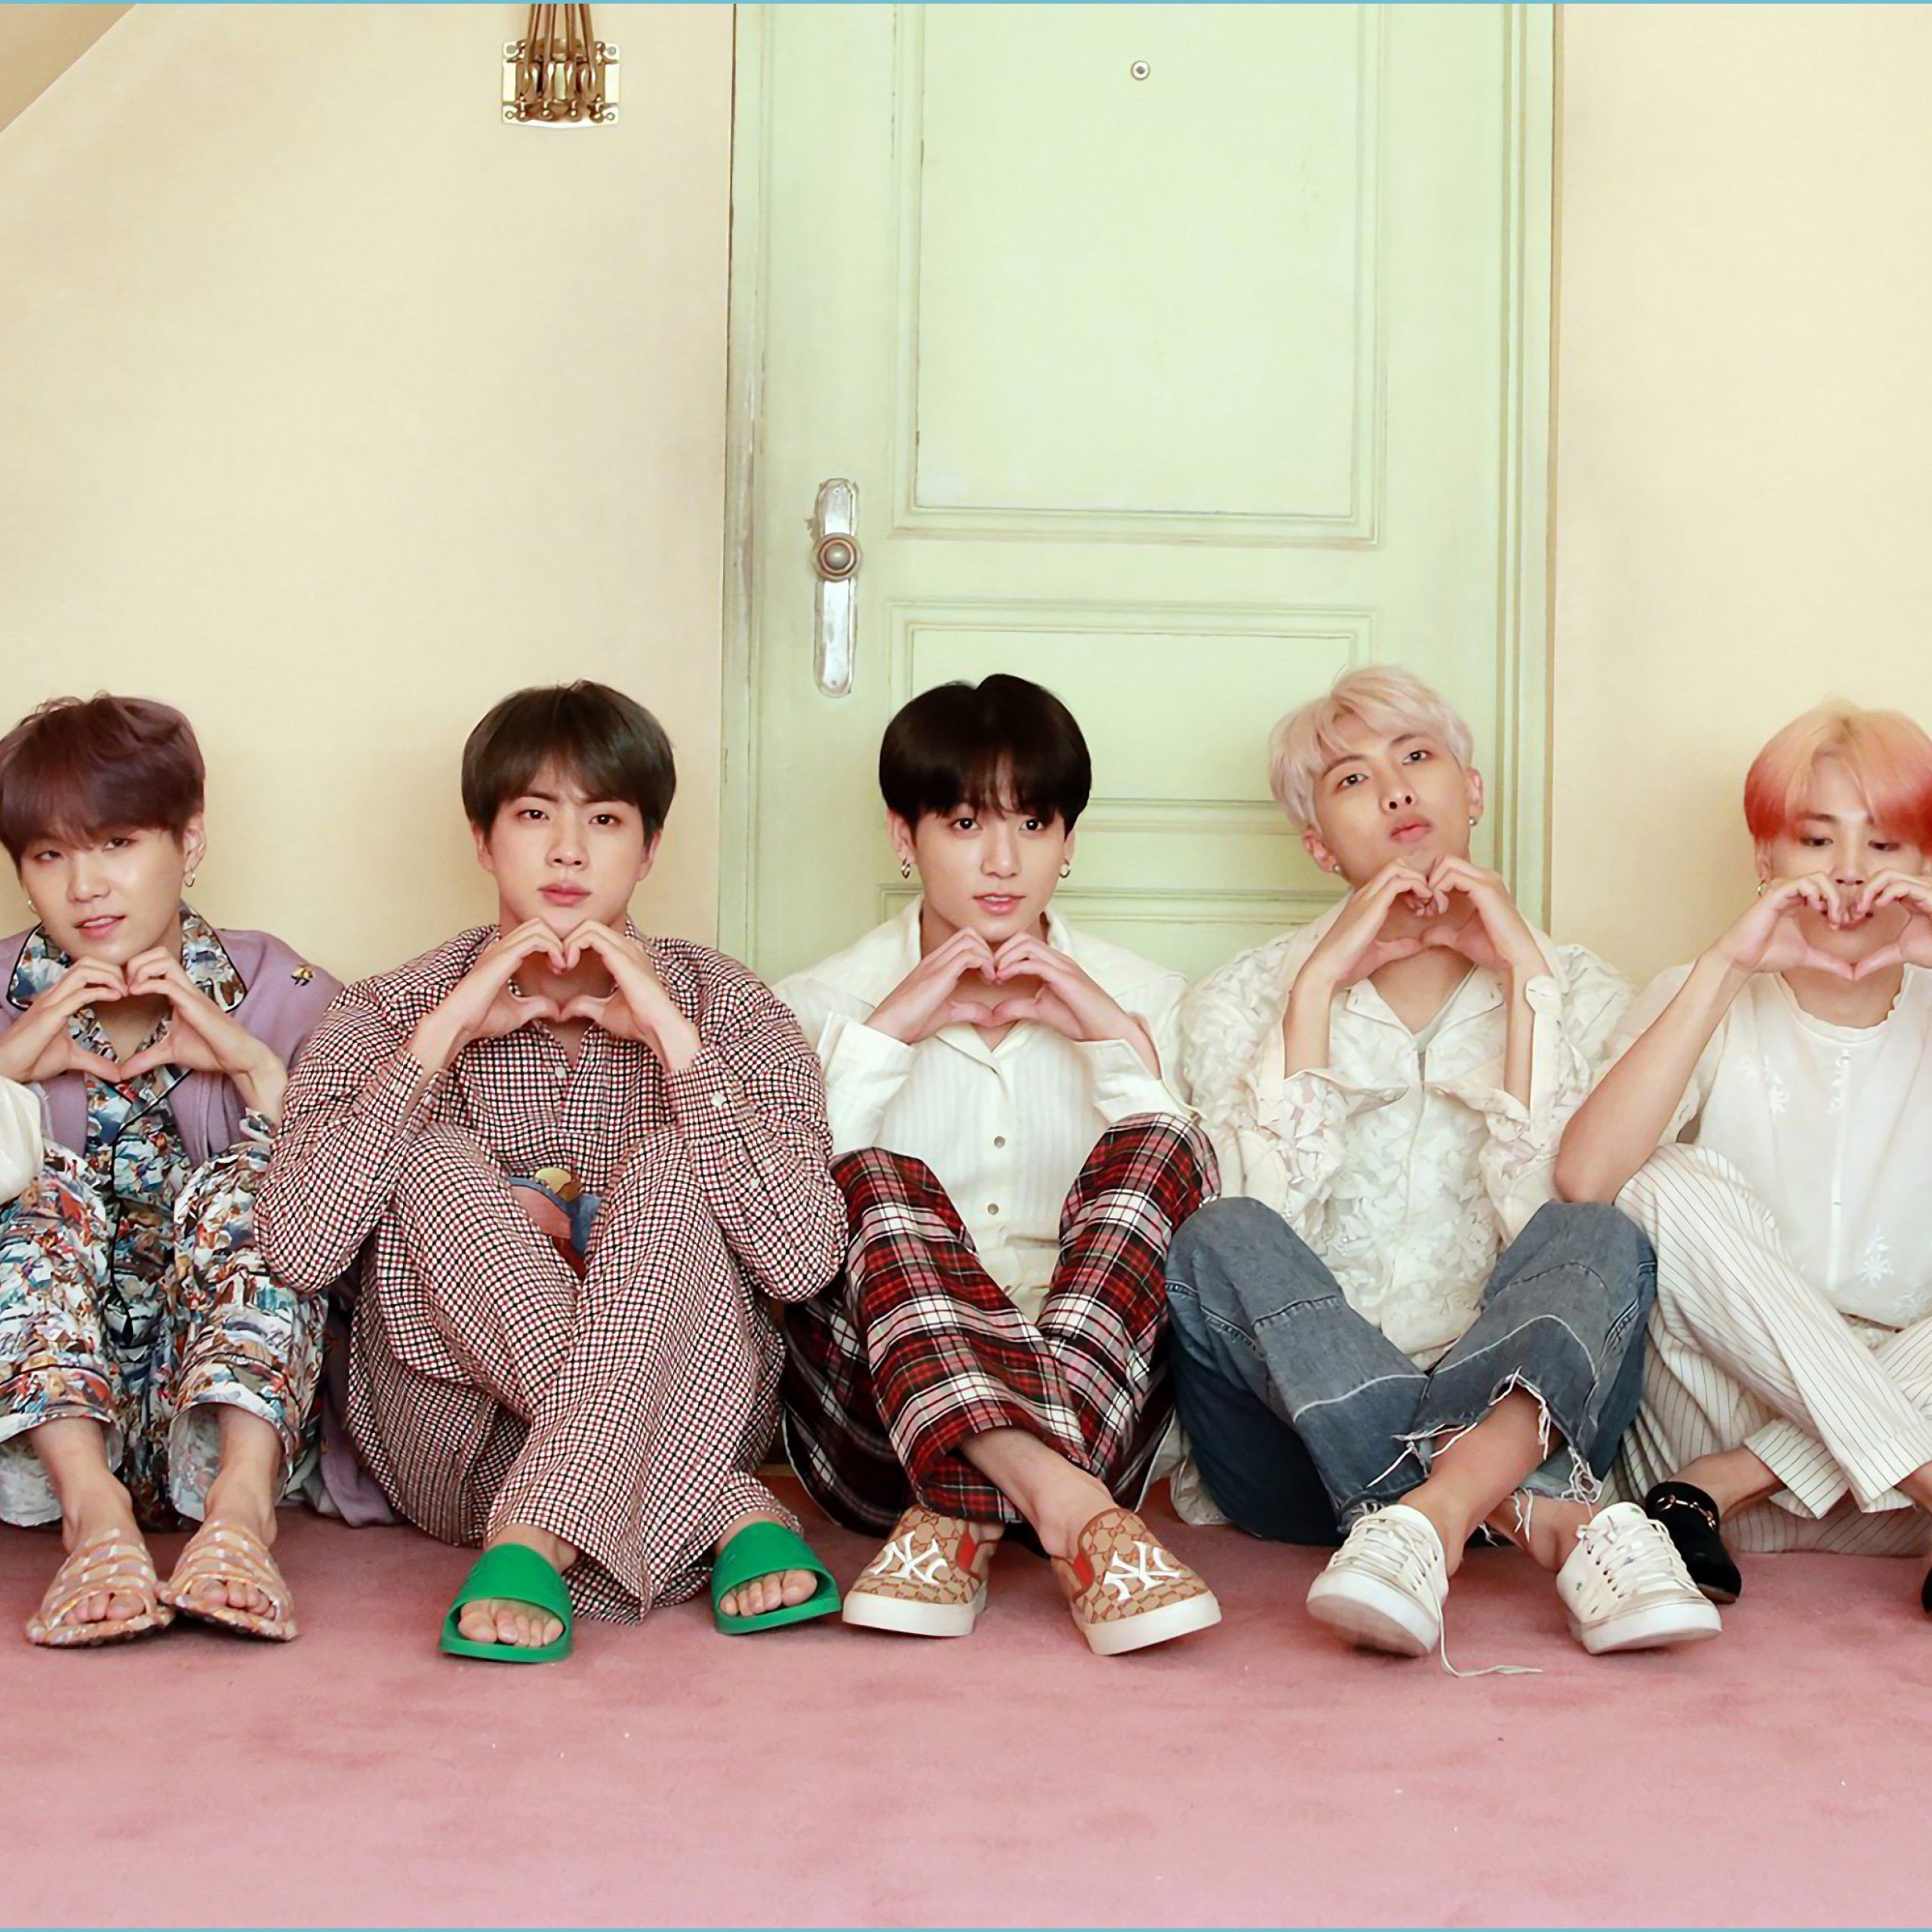 10 Things You Probably Didnt Know About Bts Desktop Wallpaper Bts Desktop Wallpaper Bts Laptop Wallpaper Bts Wallpaper Desktop Computer Wallpaper Hd Bts hd wallpaper for windows 10